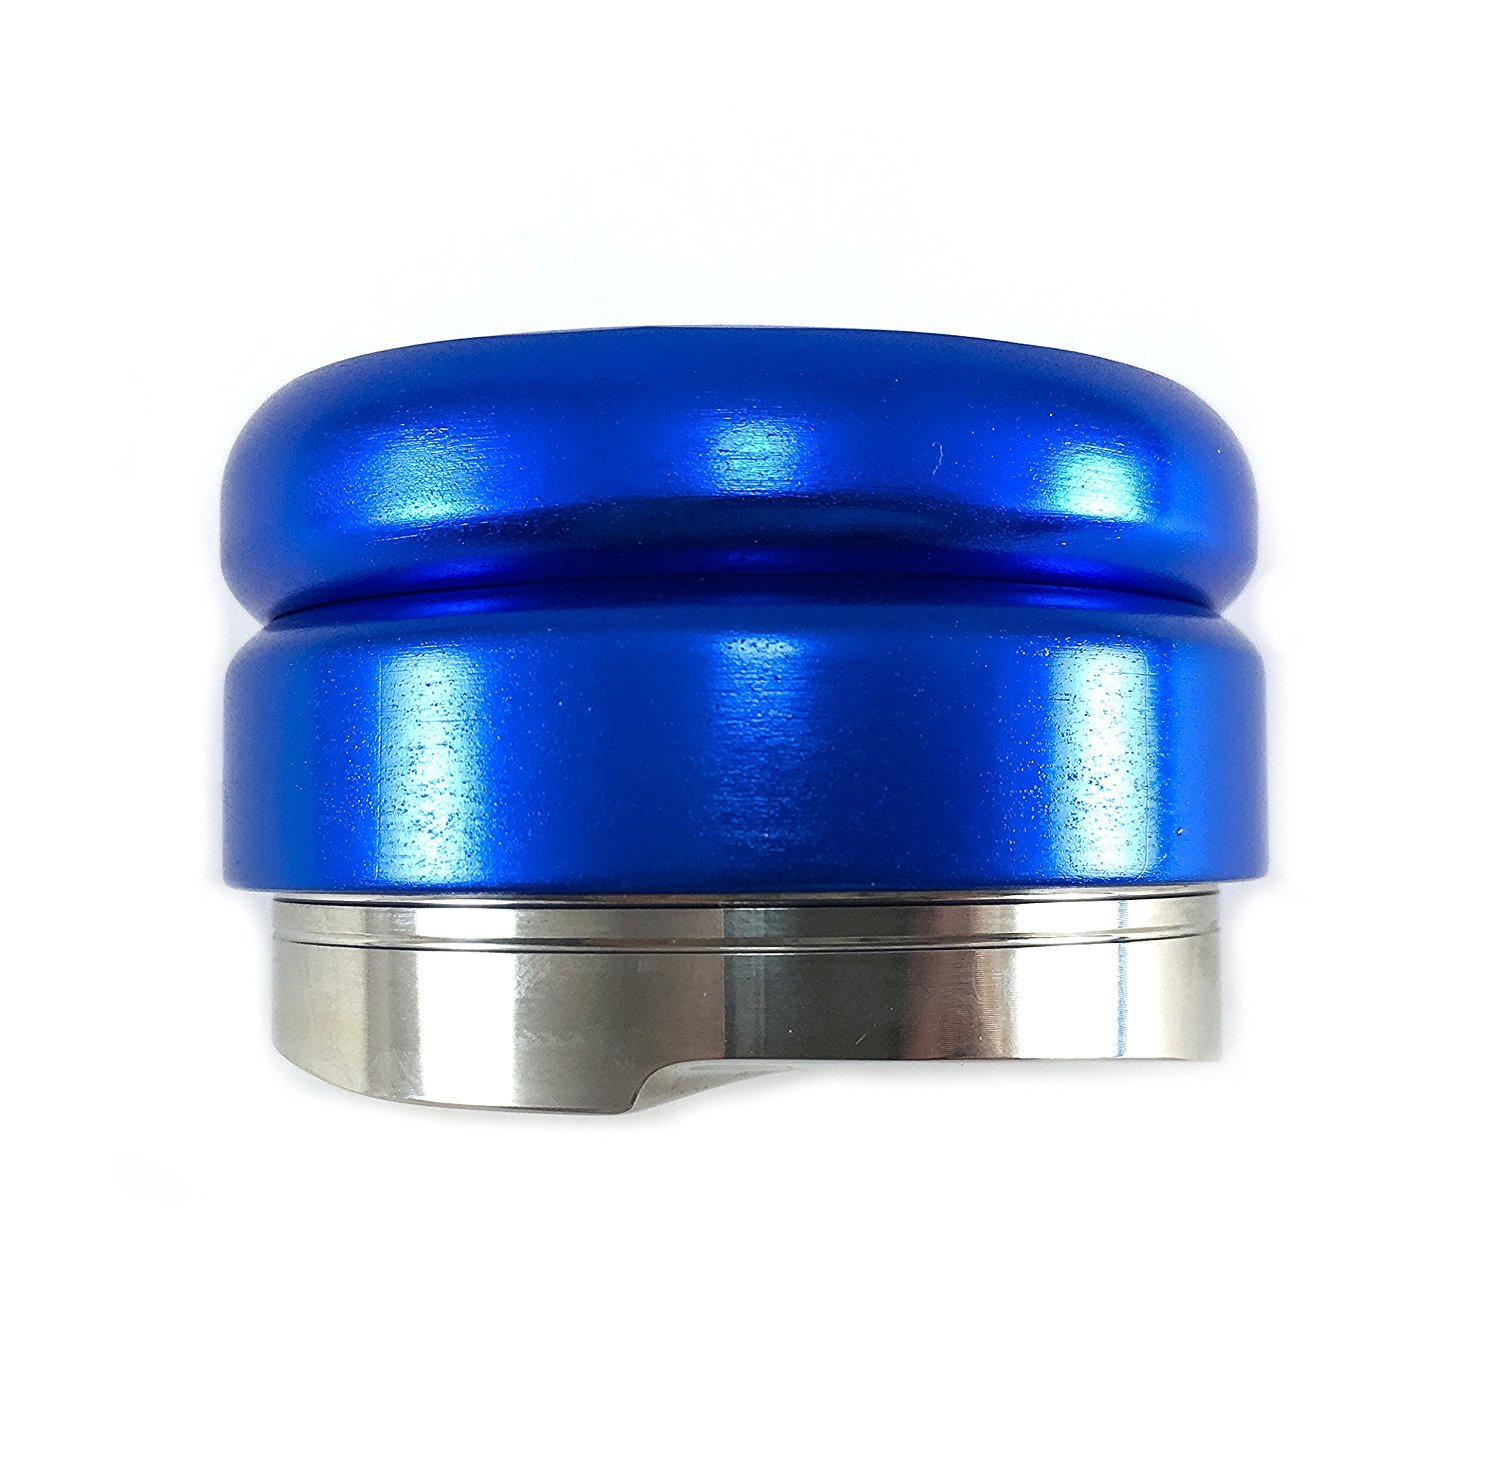 EVENLY DISTRIBUTES COFFEE GROUNDS Coffee Distributor//Leveler Tool Provides Proper Tamping for 58mm Espresso Portafilters 58mm, Blue Styer Systems COMIN18JU090888 ADJUSTABLE